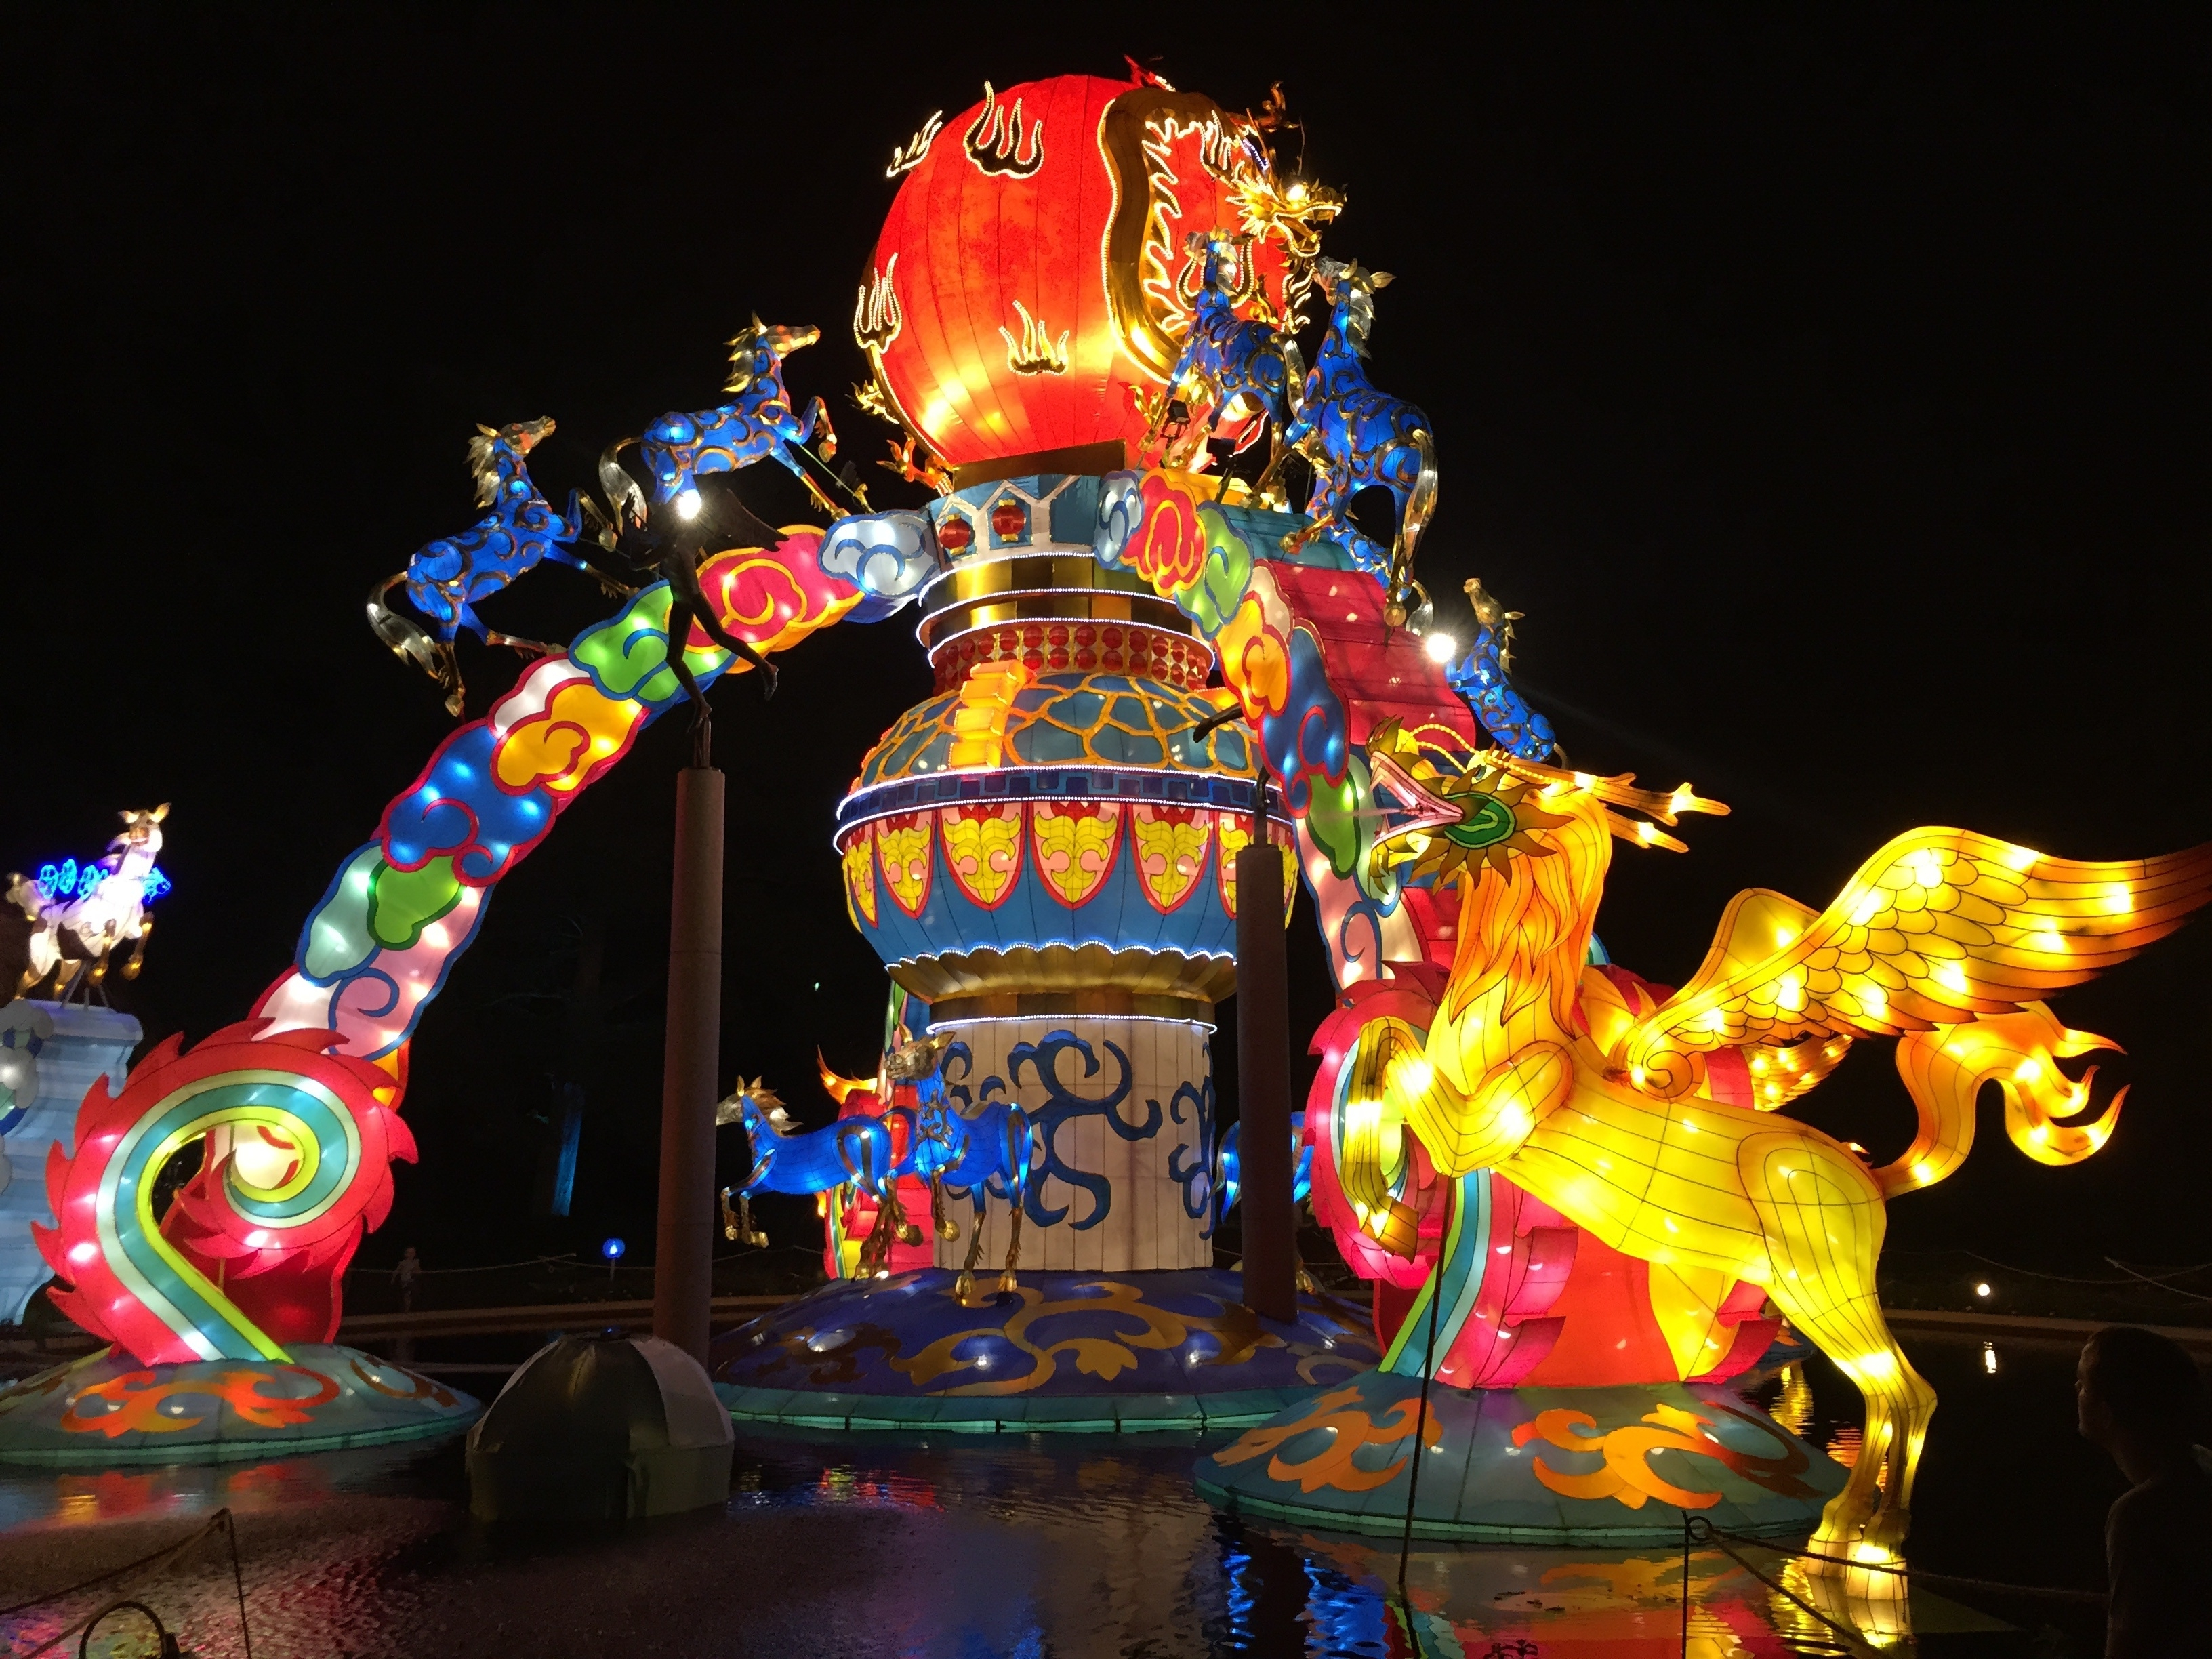 Free Images : Outdoor, Celebration, Golden, Red, Amusement Park In Well Known Outdoor Oriental Lanterns (View 18 of 20)